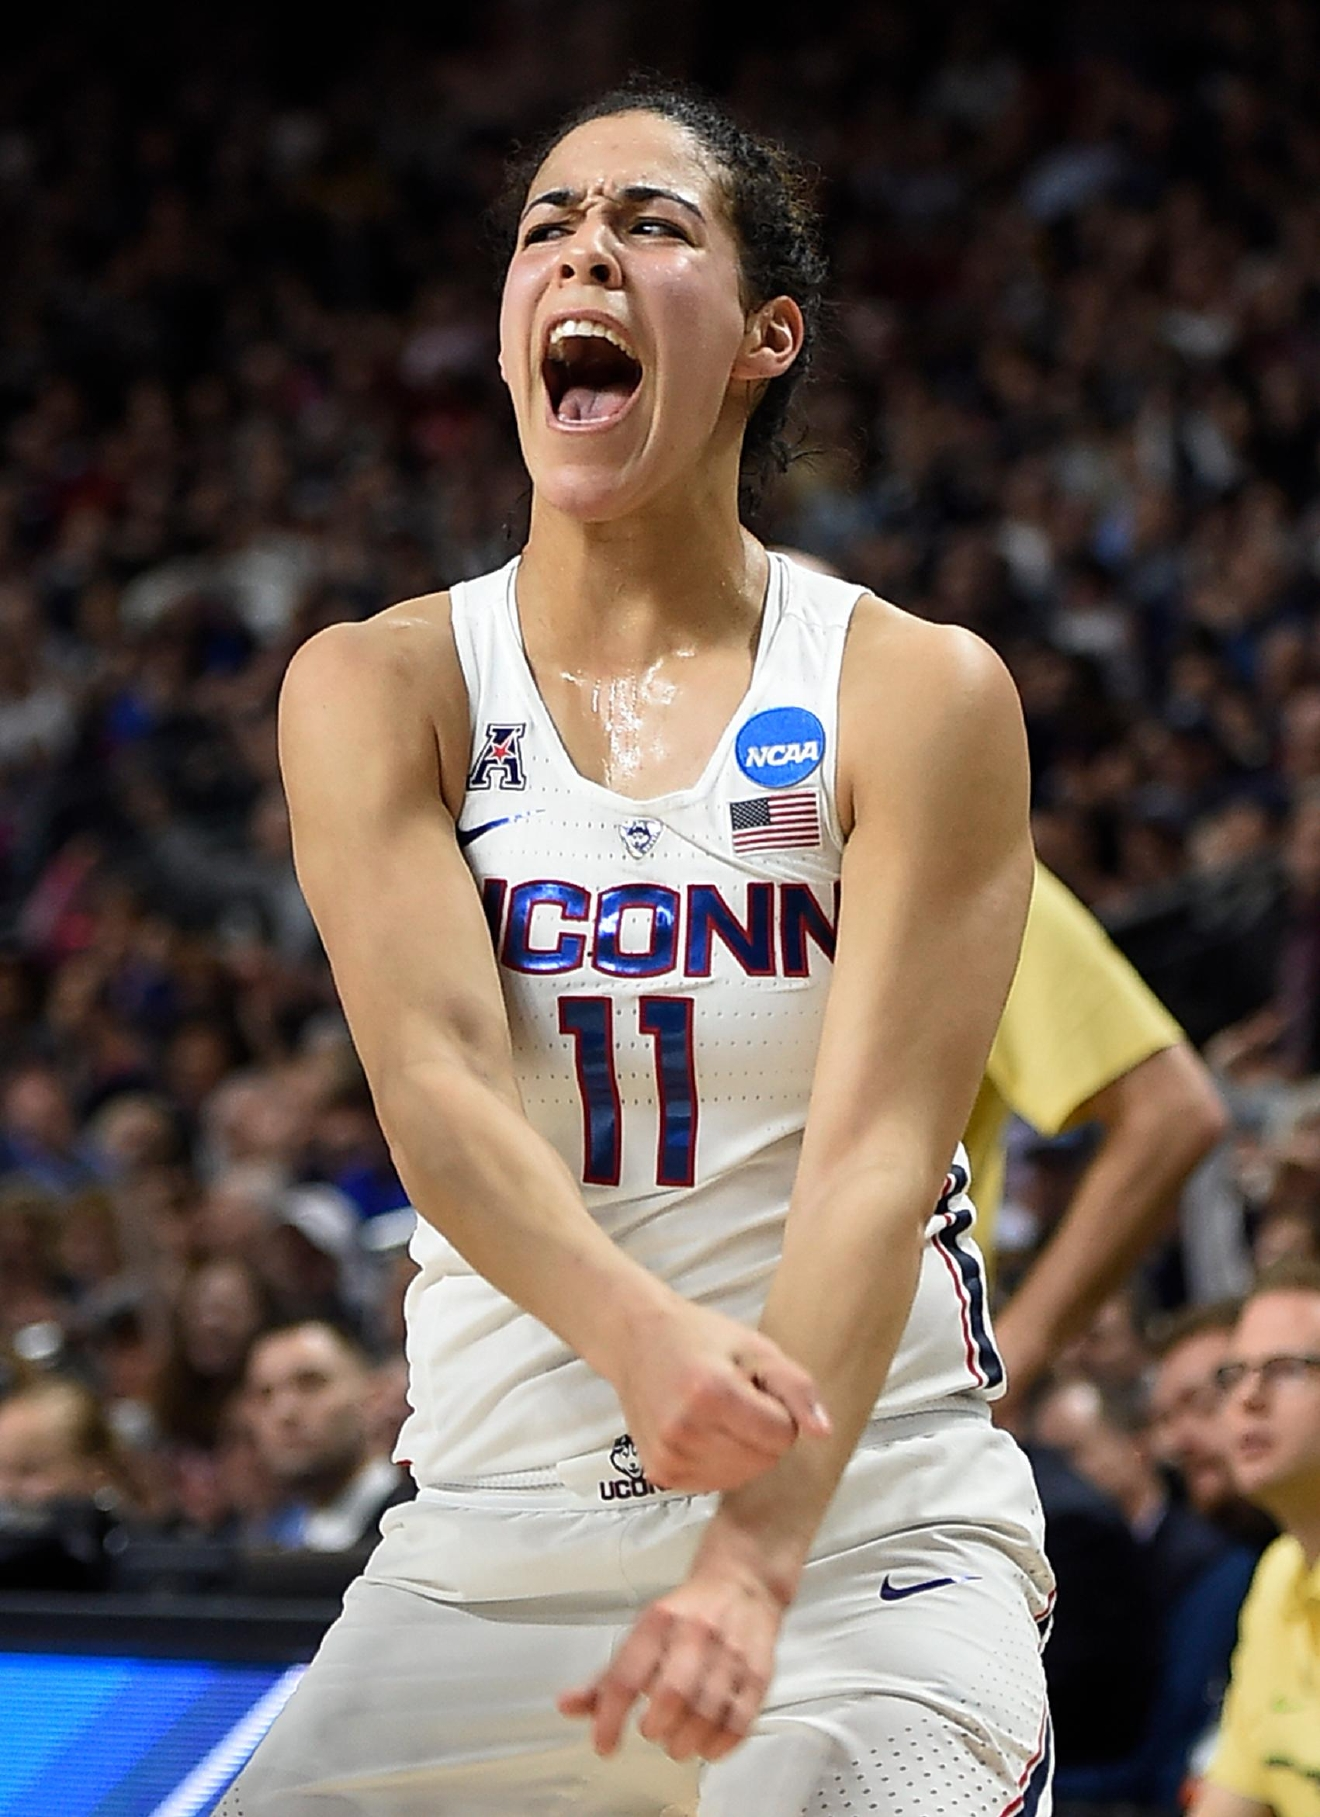 Connecticut's Kia Nurse reacts after hitting a 3-point basket during the first half of a regional final game against Oregon in the NCAA women's college basketball tournament, Monday, March 27, 2017, in Bridgeport, Conn. (AP Photo/Jessica Hill)